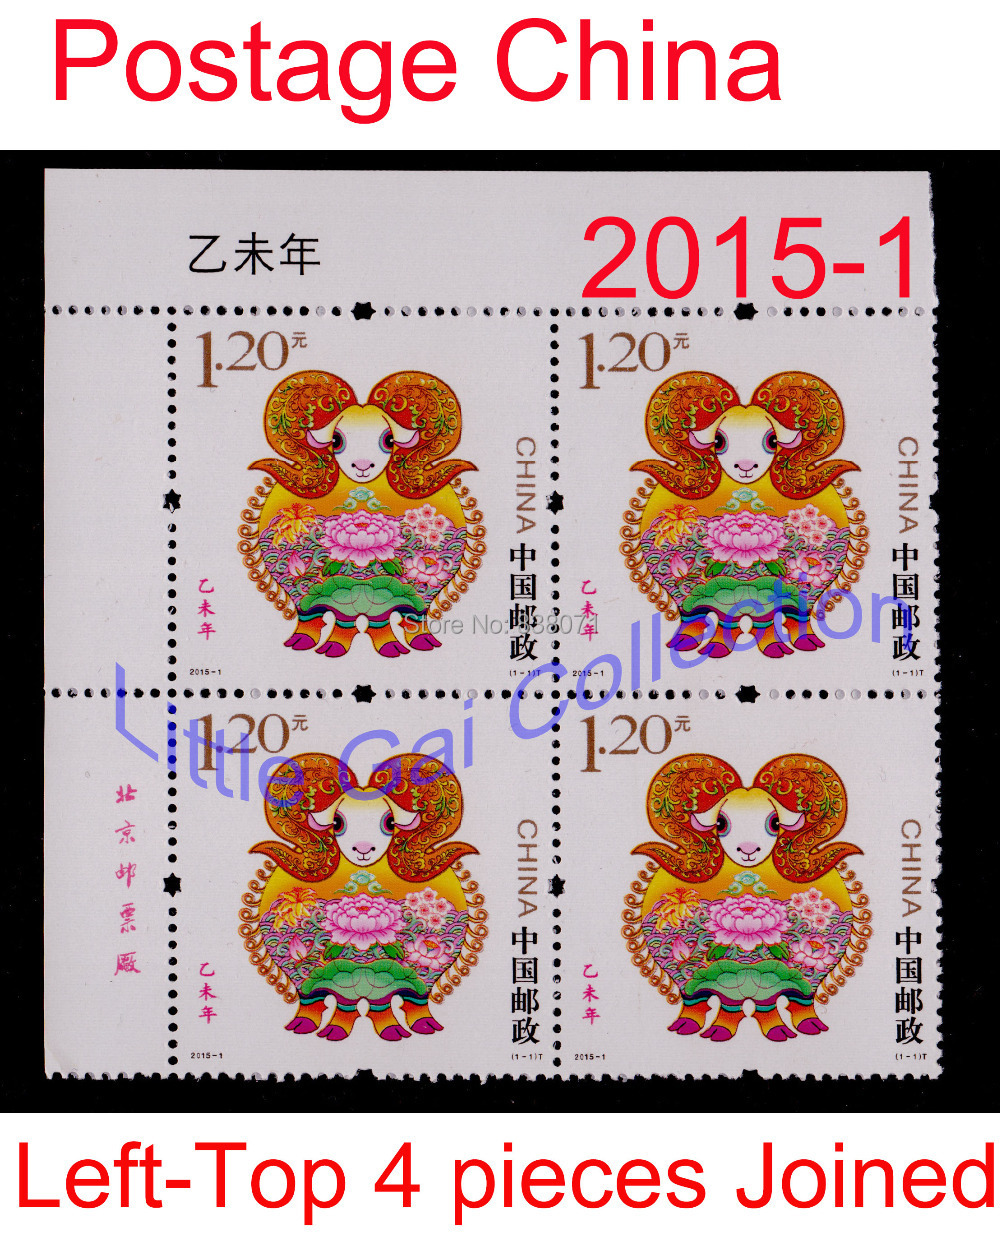 china post stamp 2015-1,the third Chinese zodiac stamps - sheep ,left - top 4 pieces joined sheet ,postage collecting,souvenir 4pcs chinese acient tower postage stamps unused new no repeat non postmark published in china best stamps collecting